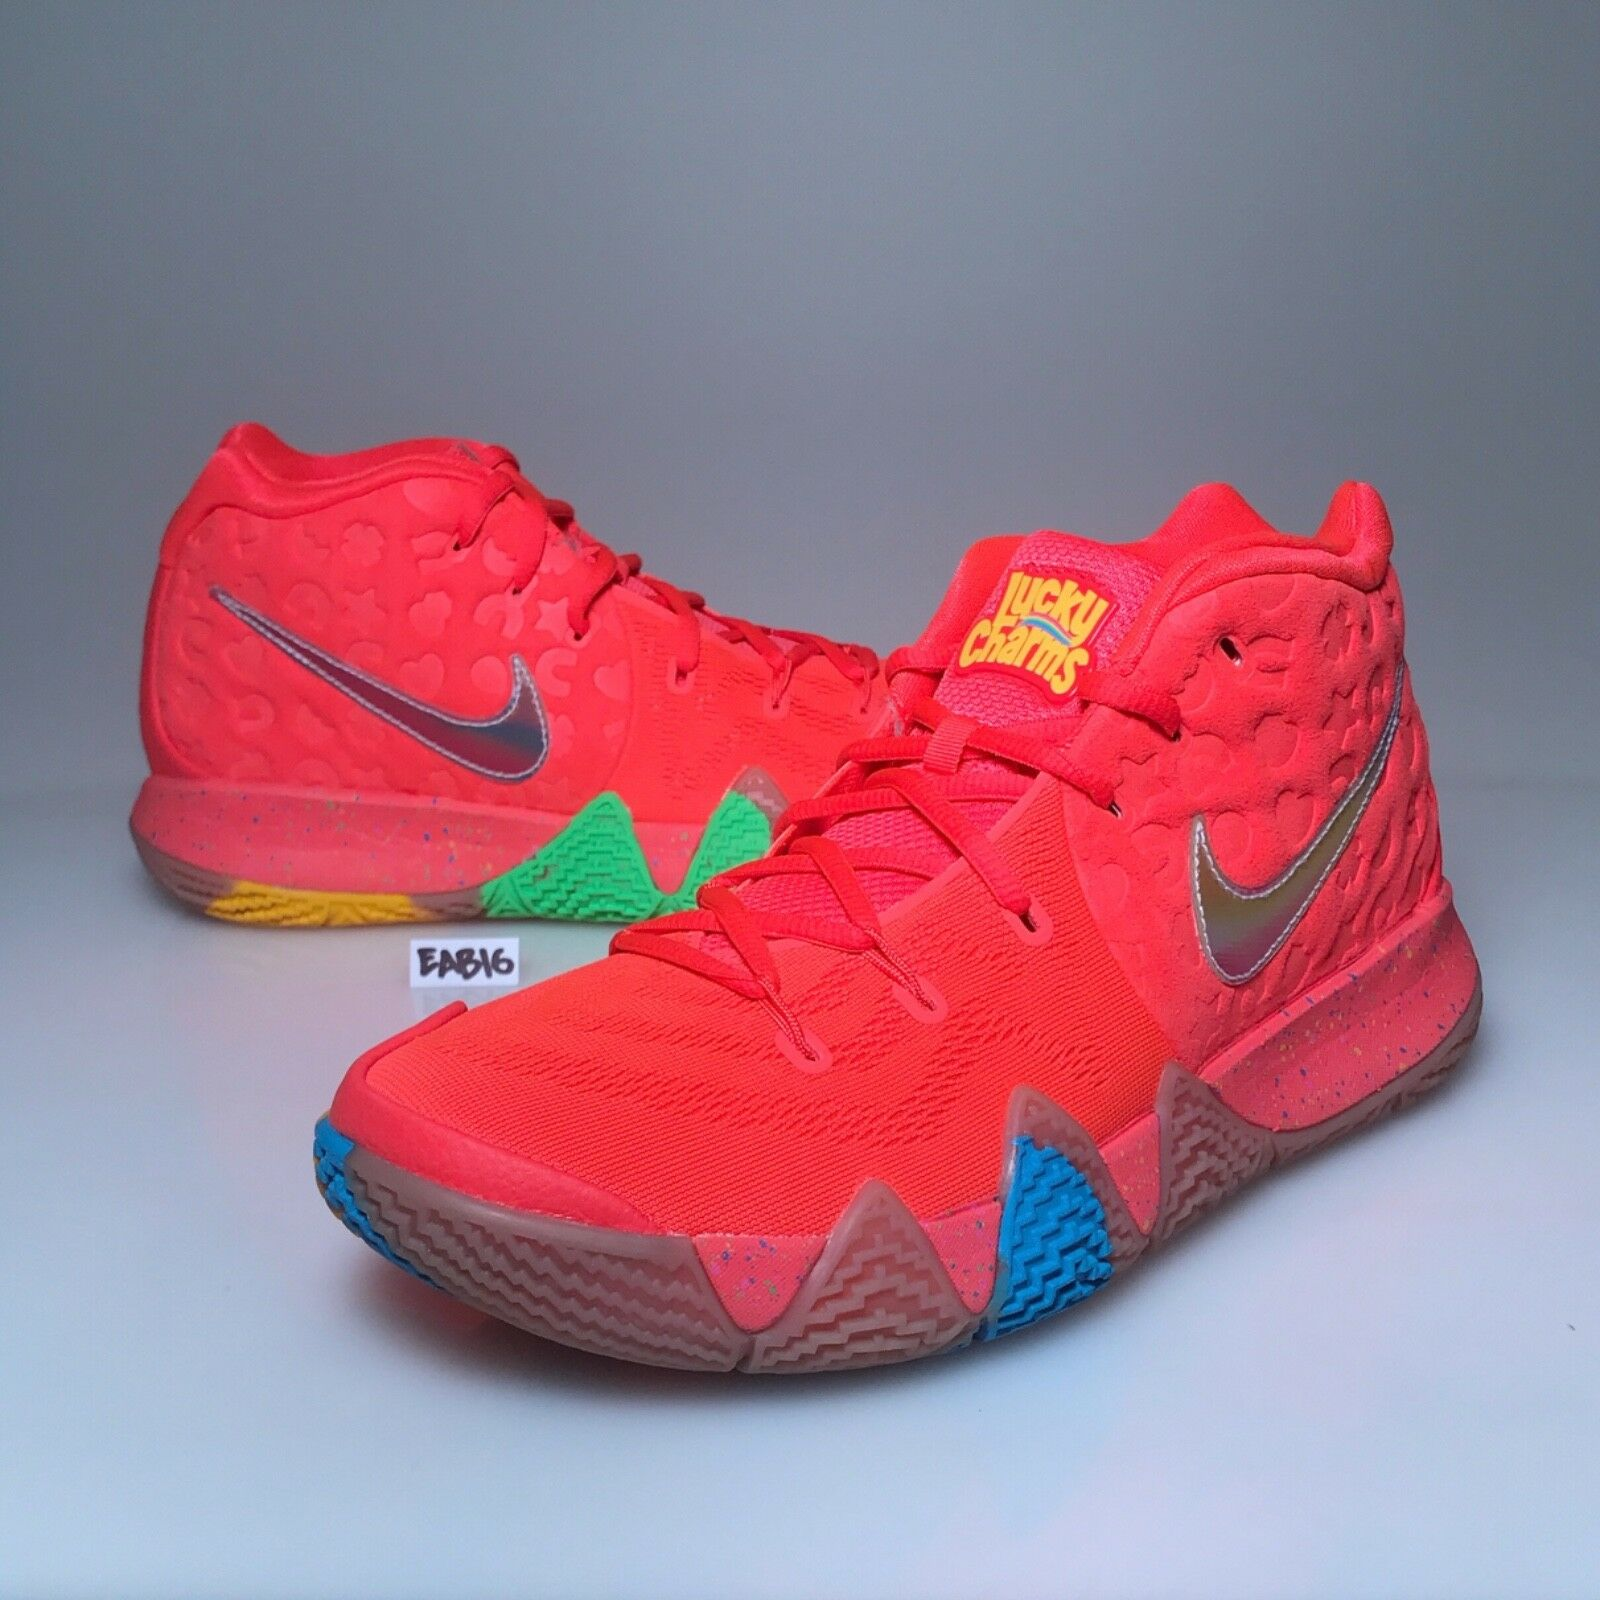 Nike Kyrie Charms Irving 4 IV Lucky Charms Kyrie Cereal Red Brown BV0428-600 Mens & Kids GS 99c070